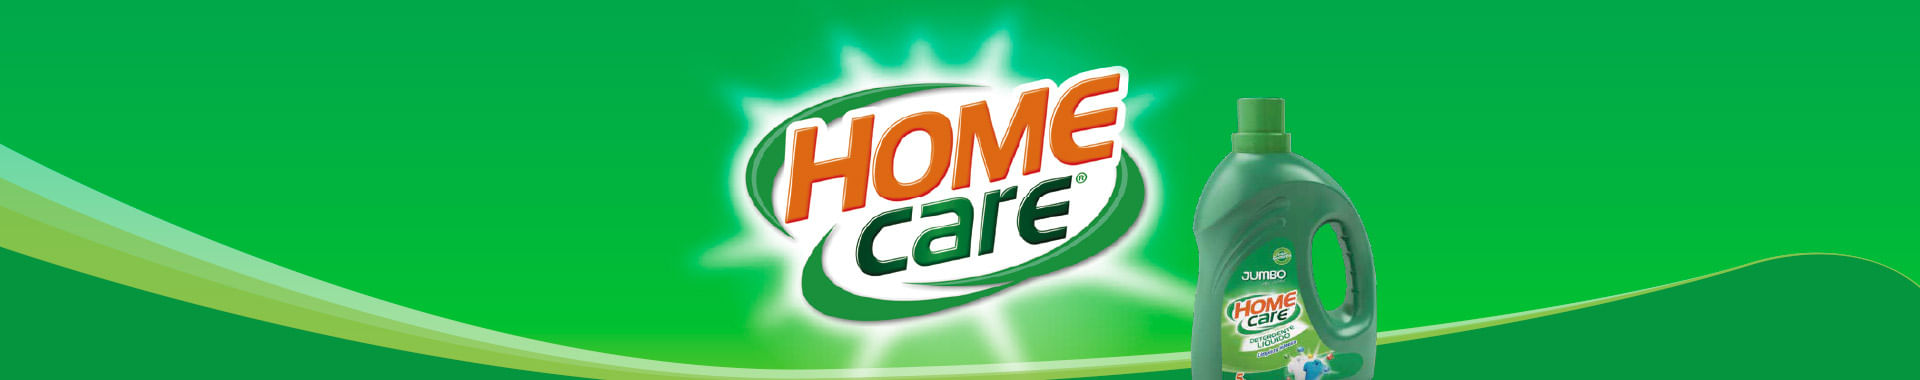 Banner Home Care Desktop